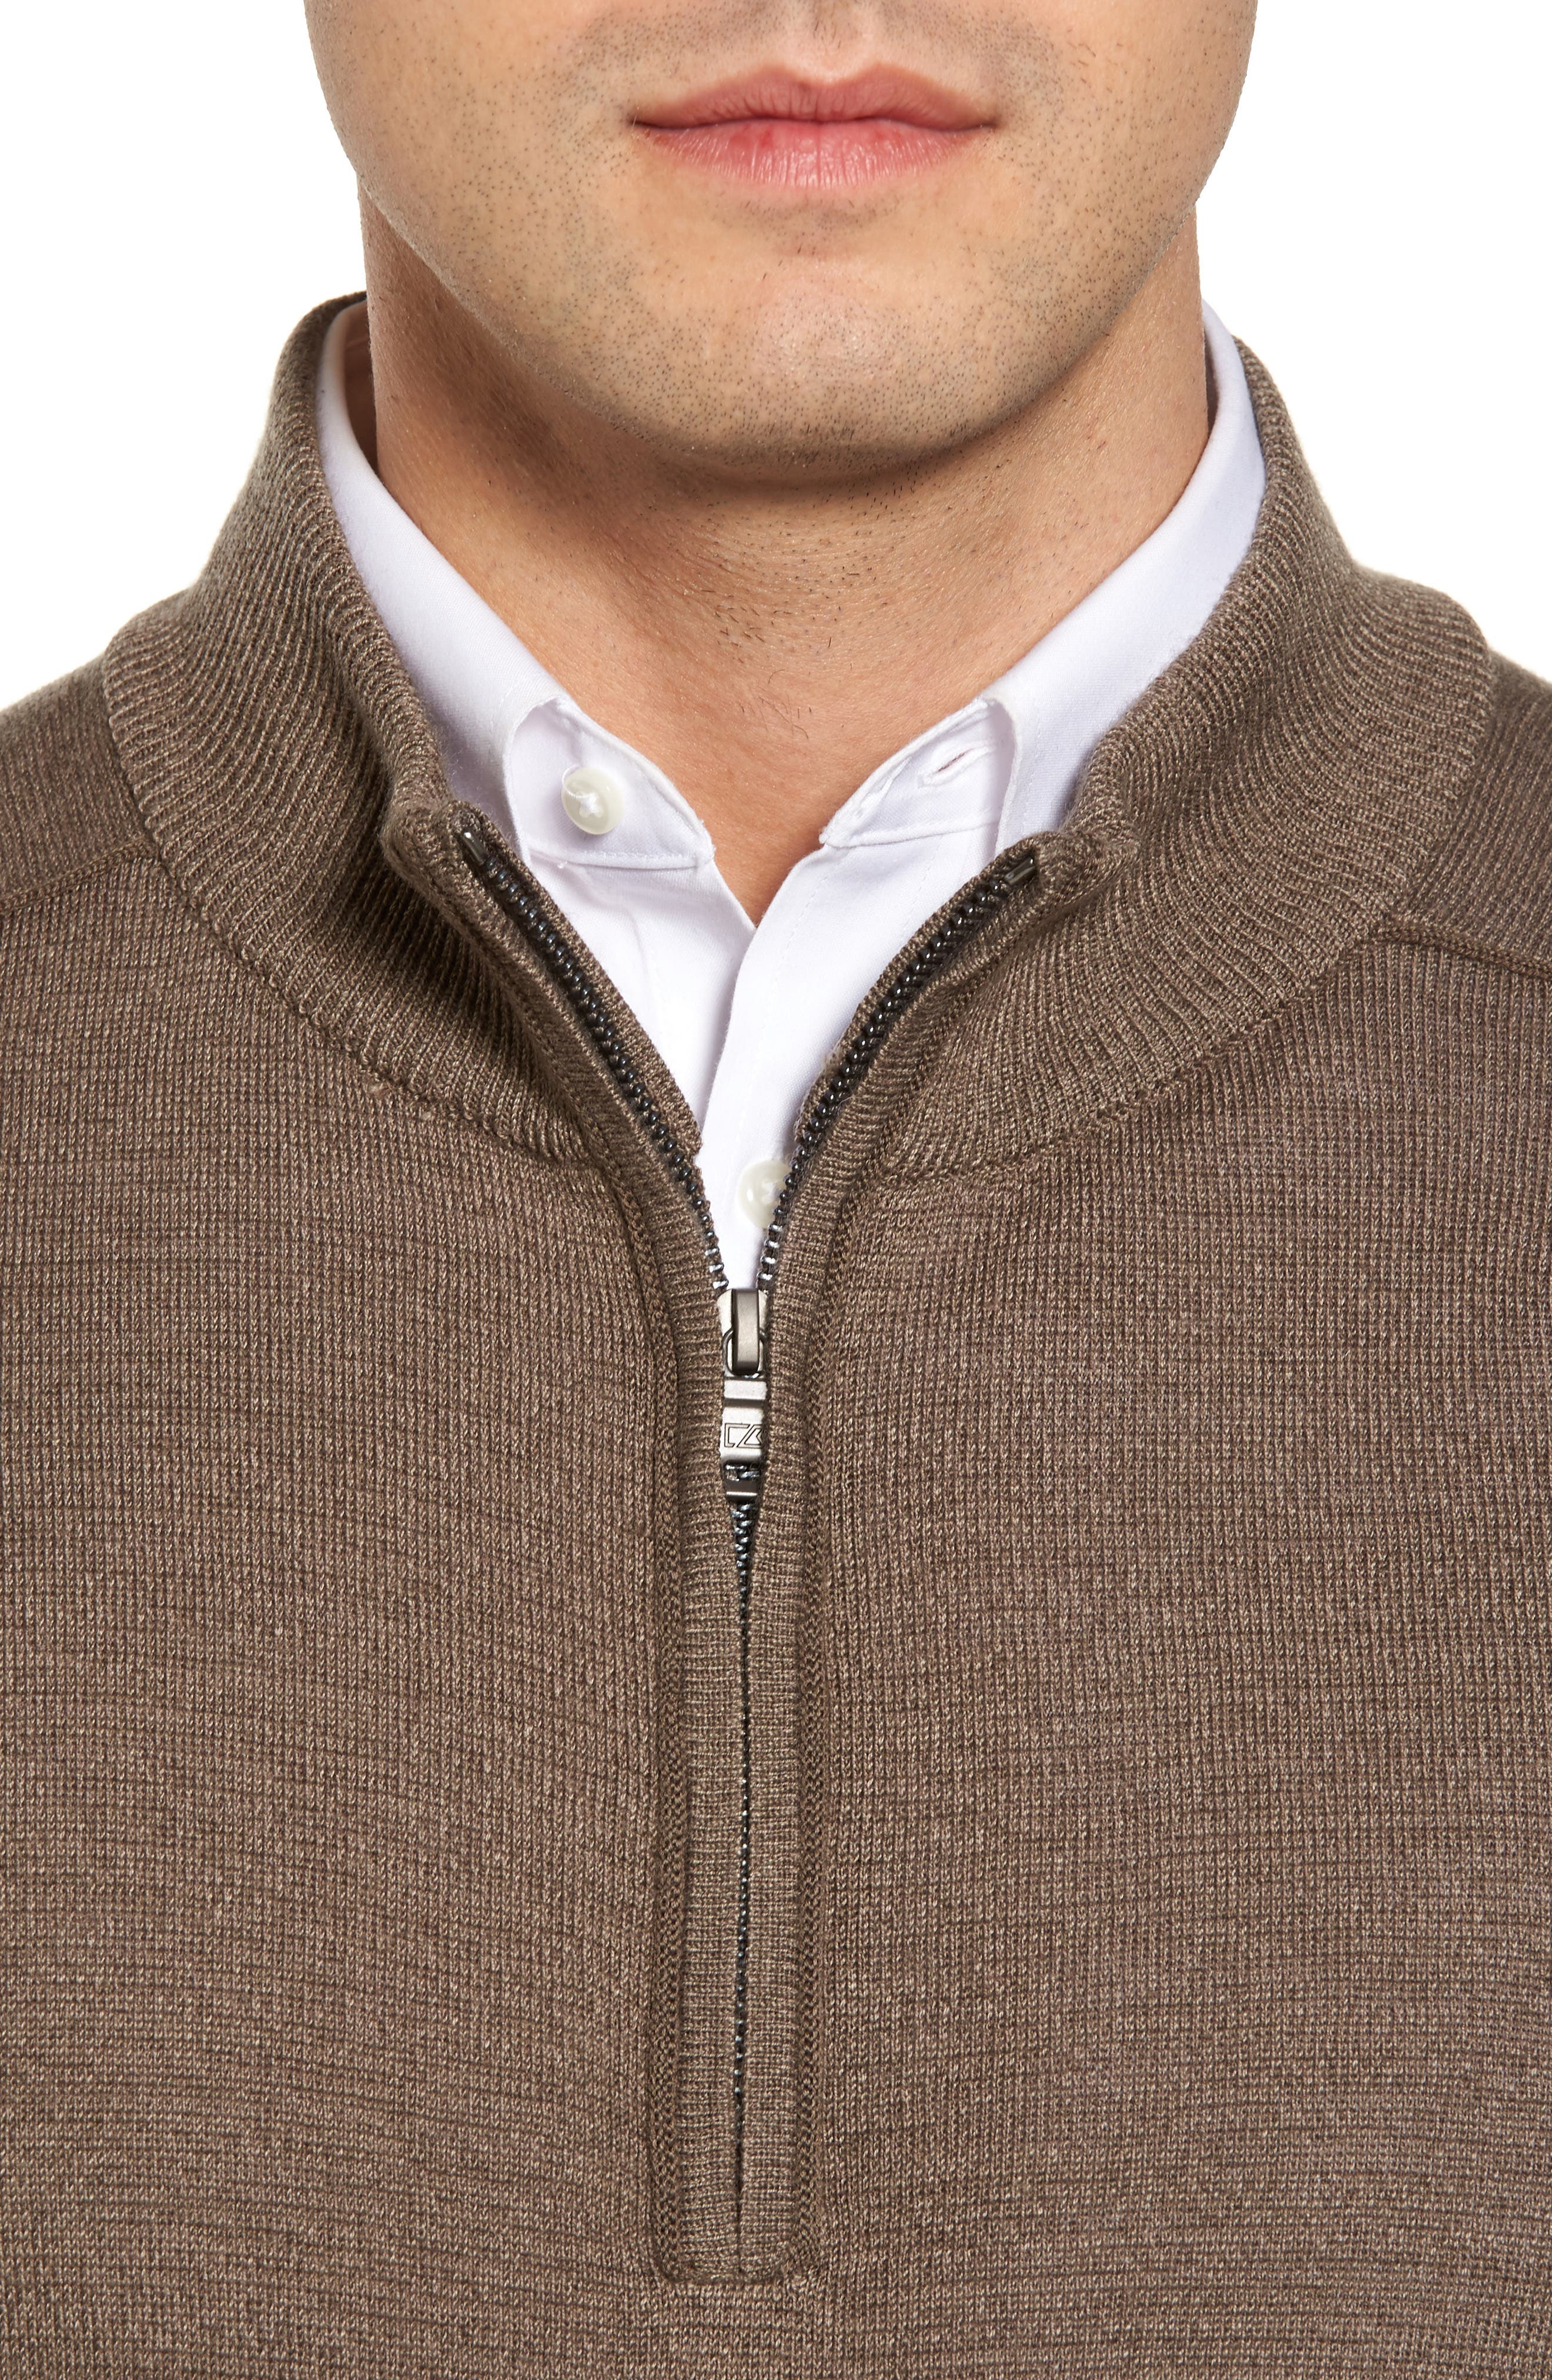 Henry Quarter-Zip Pullover Sweater,                             Alternate thumbnail 4, color,                             Twig